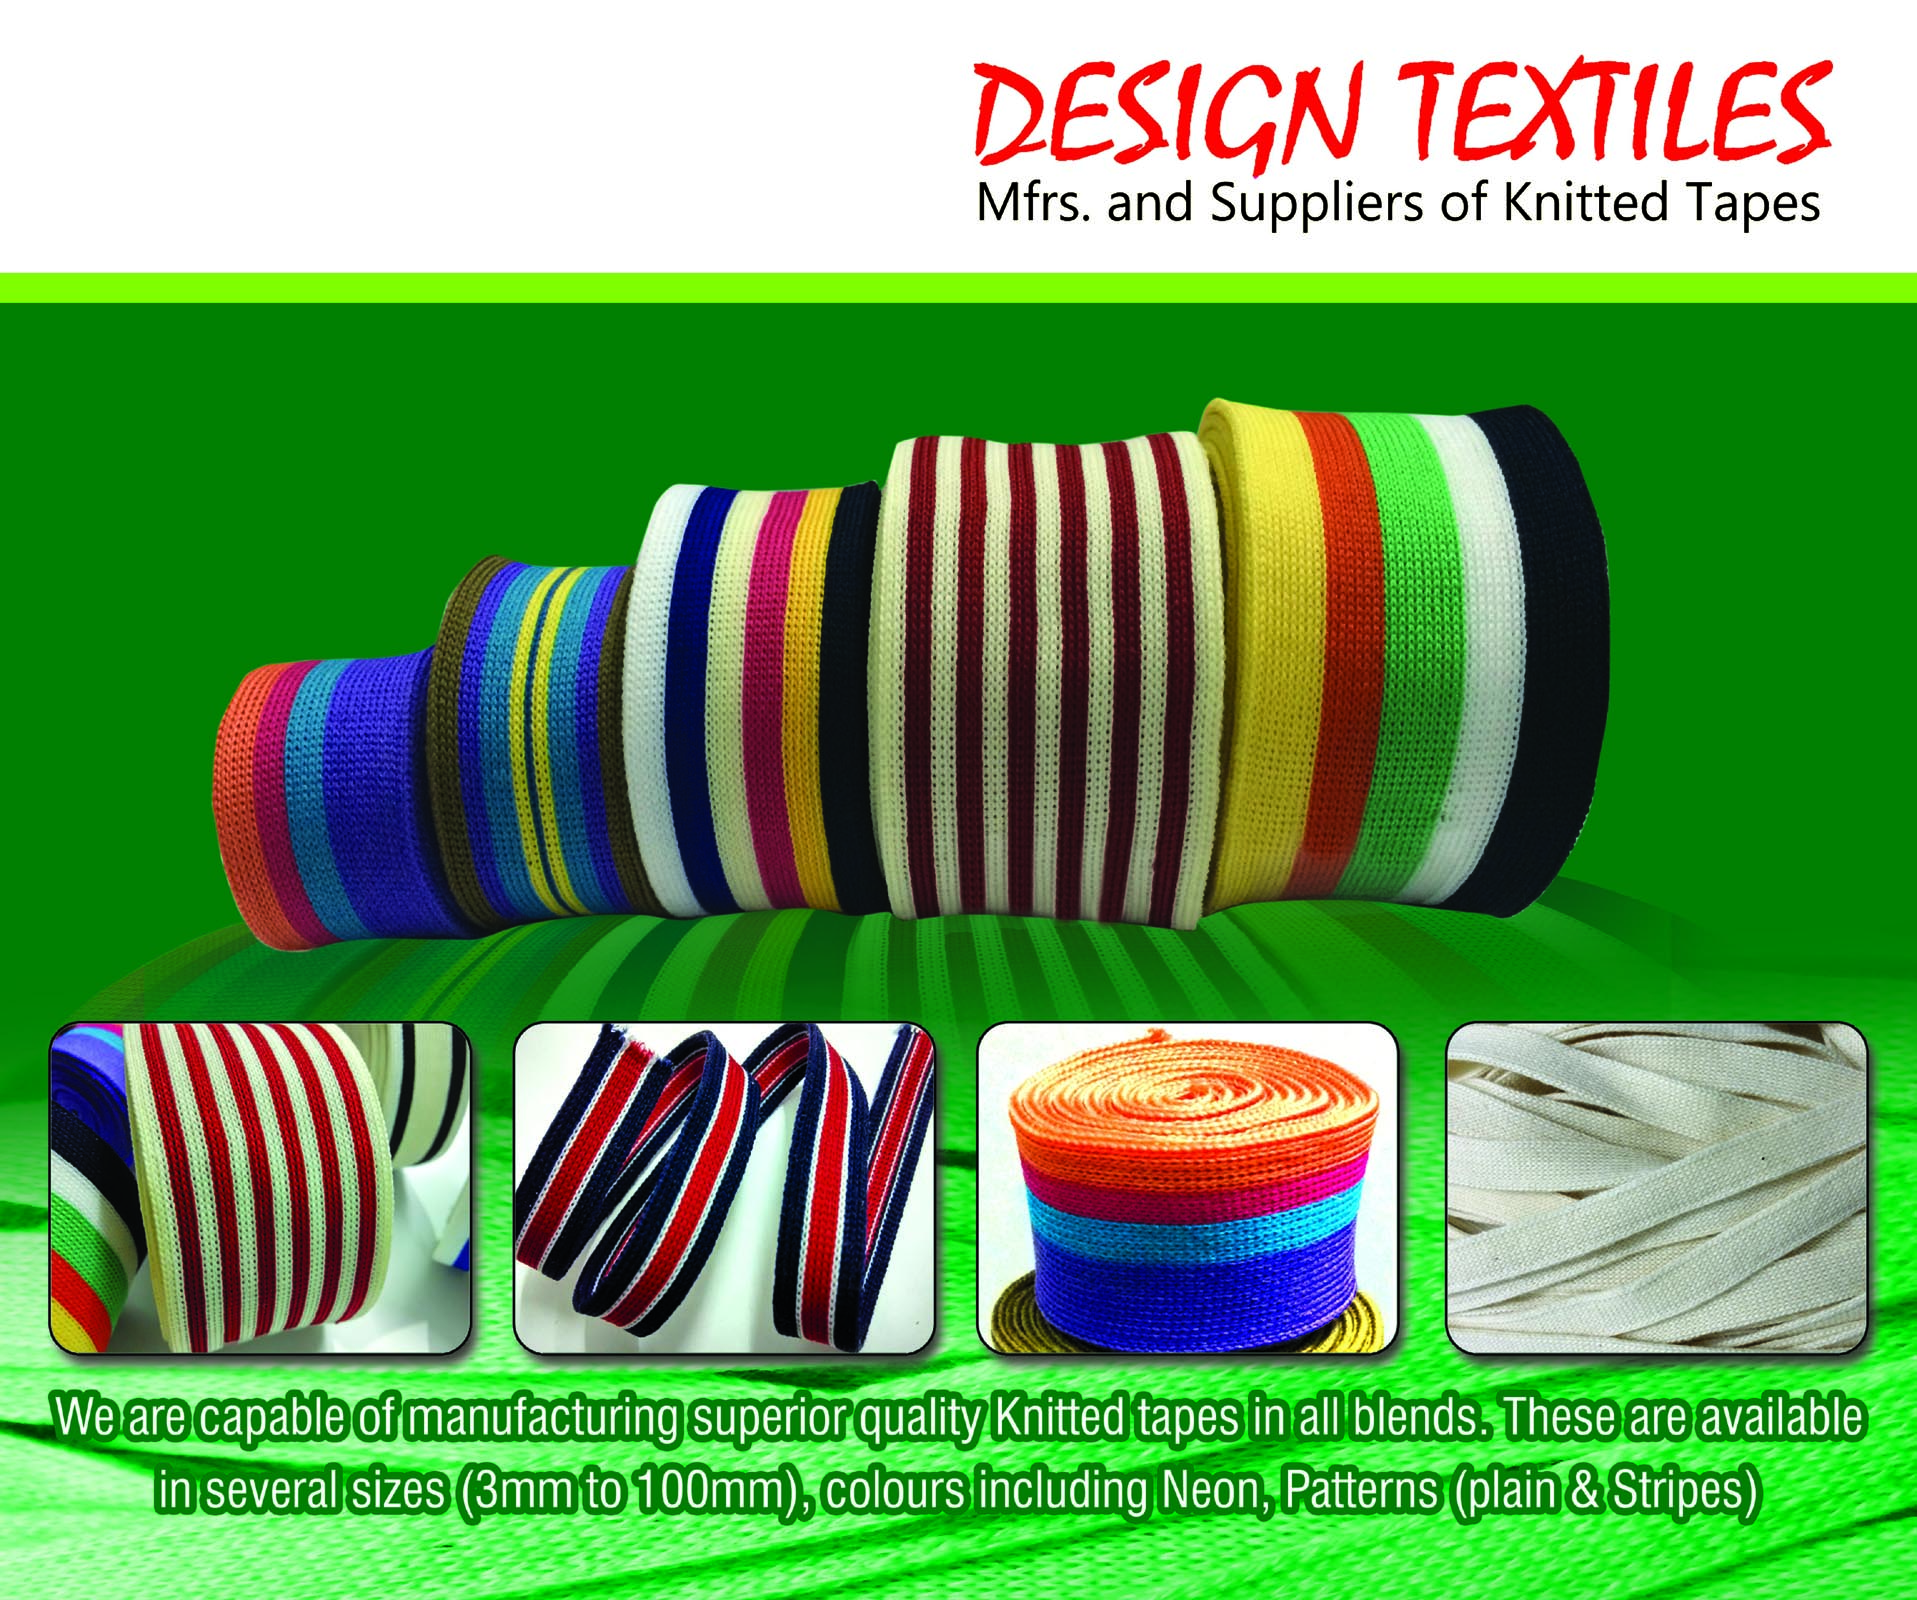 Design Textiles - Tape Manufacturers & Suppliers, Rope Manufacturers, Knitted Tape Manufacturers in Tirupur